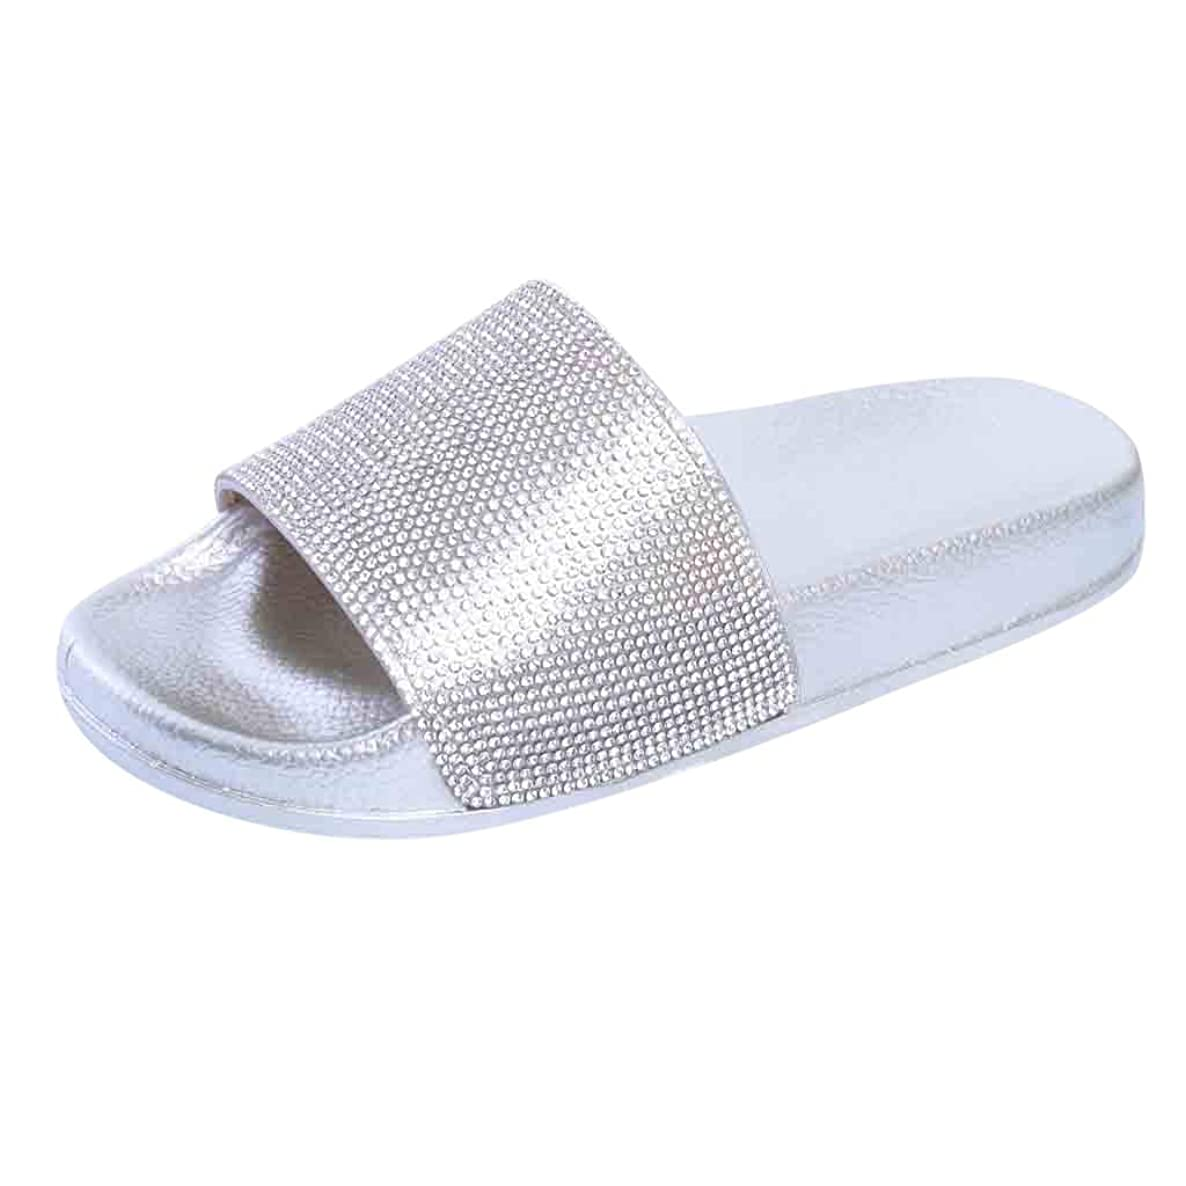 Boomboom Summer Sandals, Women Wide Width Sequins Flat Slides Sandals Diamond Slippers